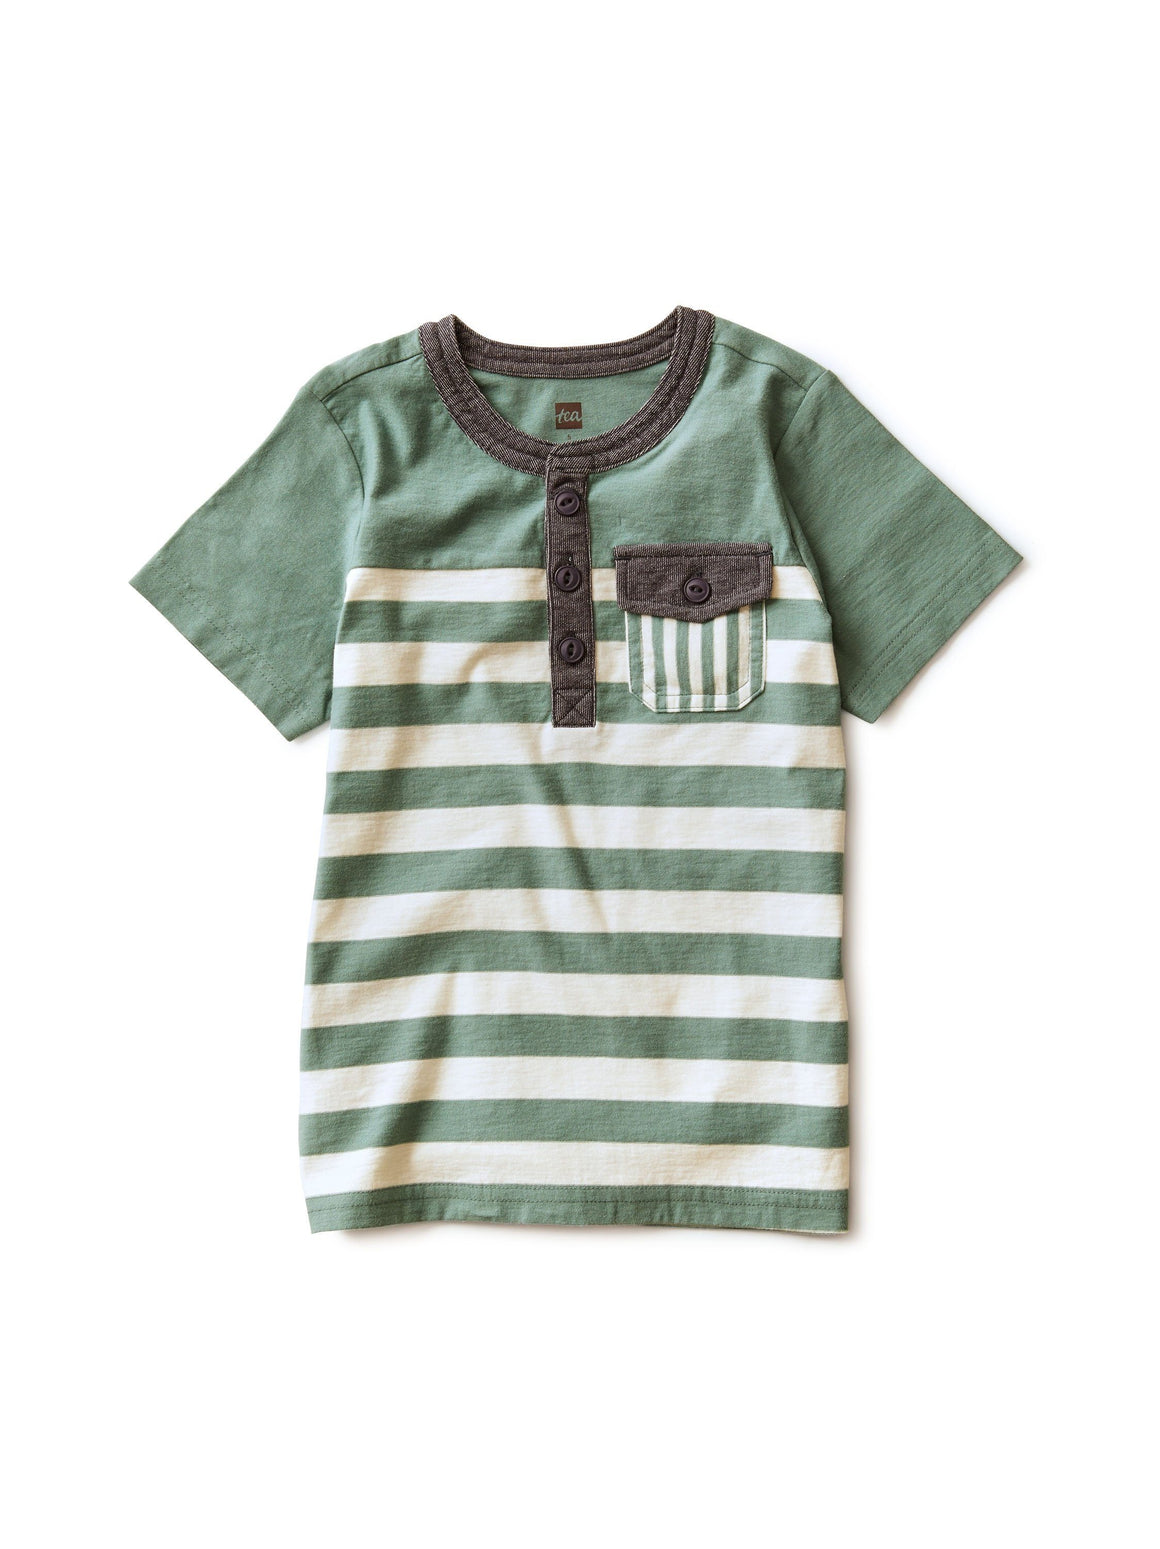 20S22121 - B19 Tea Collection Sagebrush Striped Pocket Henley Tee Short Sleeve Shirts Tea Collection